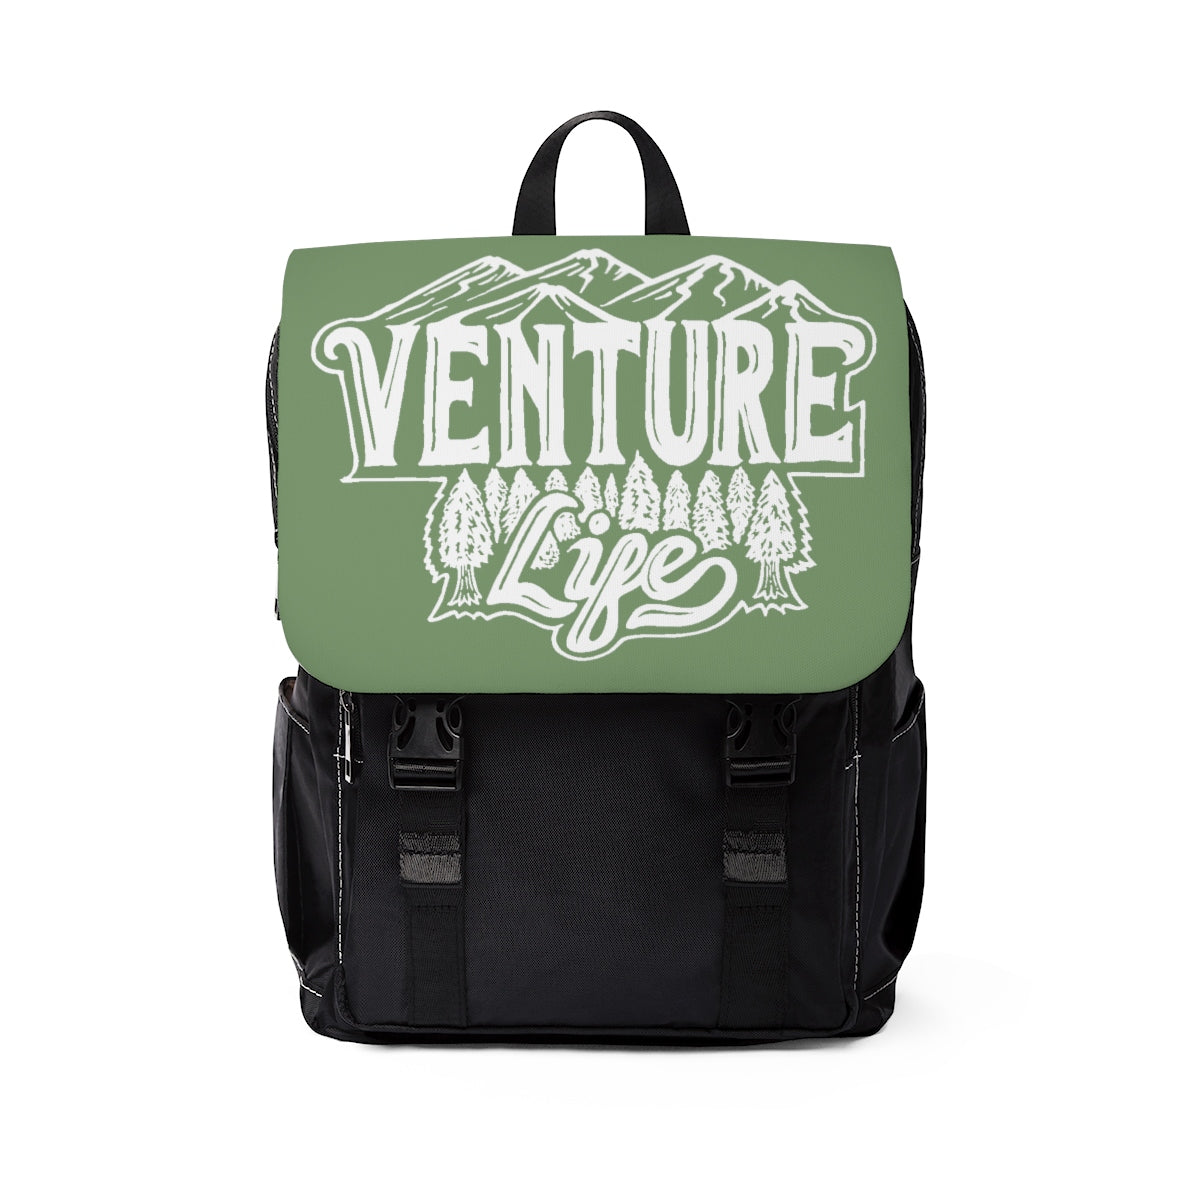 Venture Oxford Bag